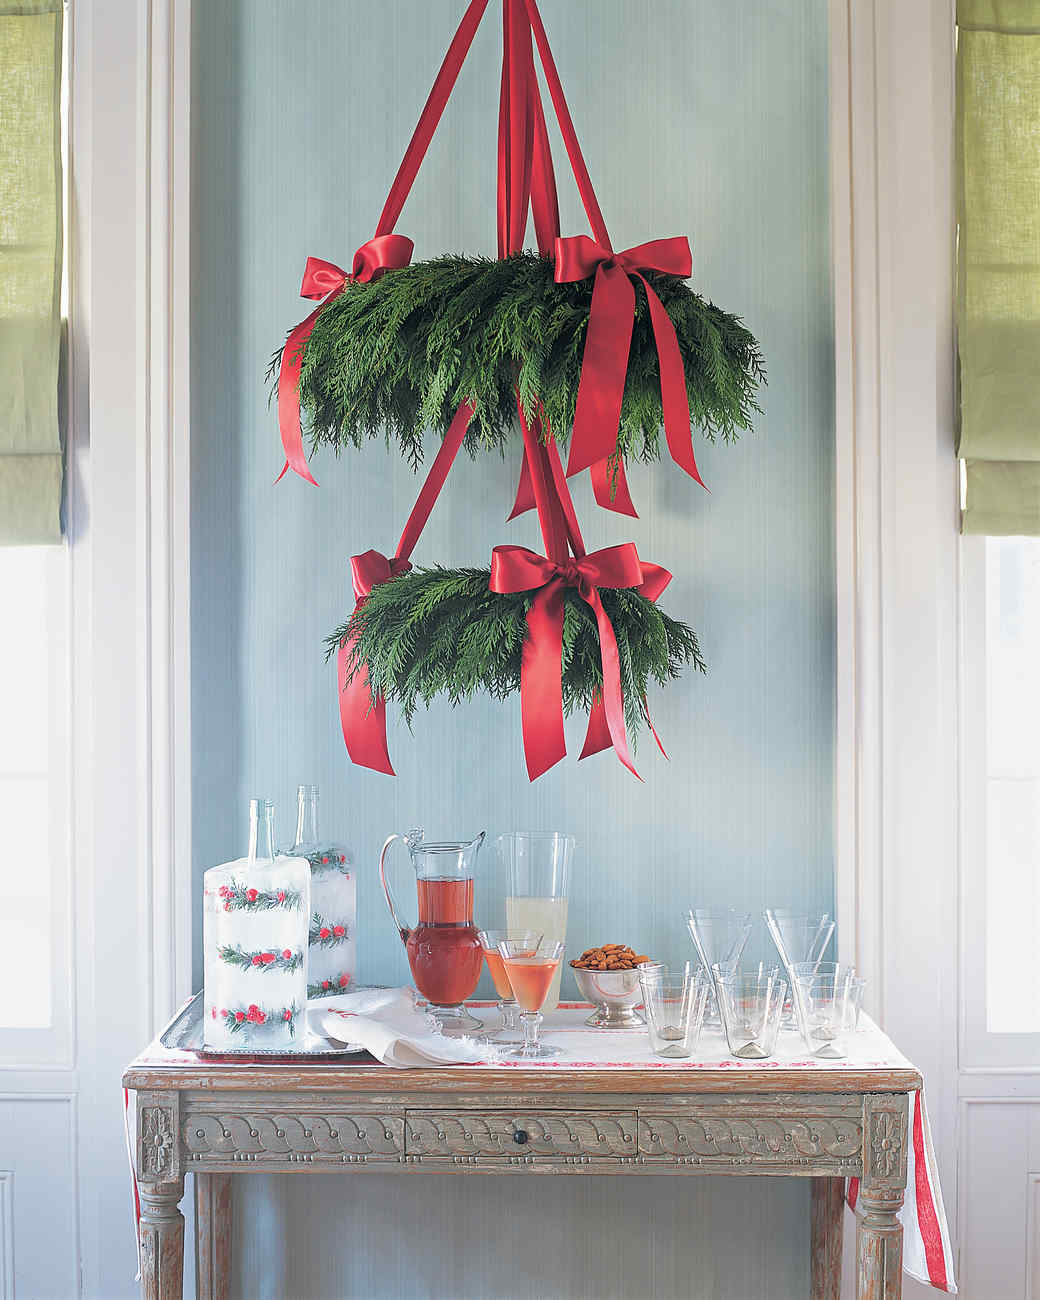 Decorating Your House For Christmas: Quick Christmas Decorating Ideas